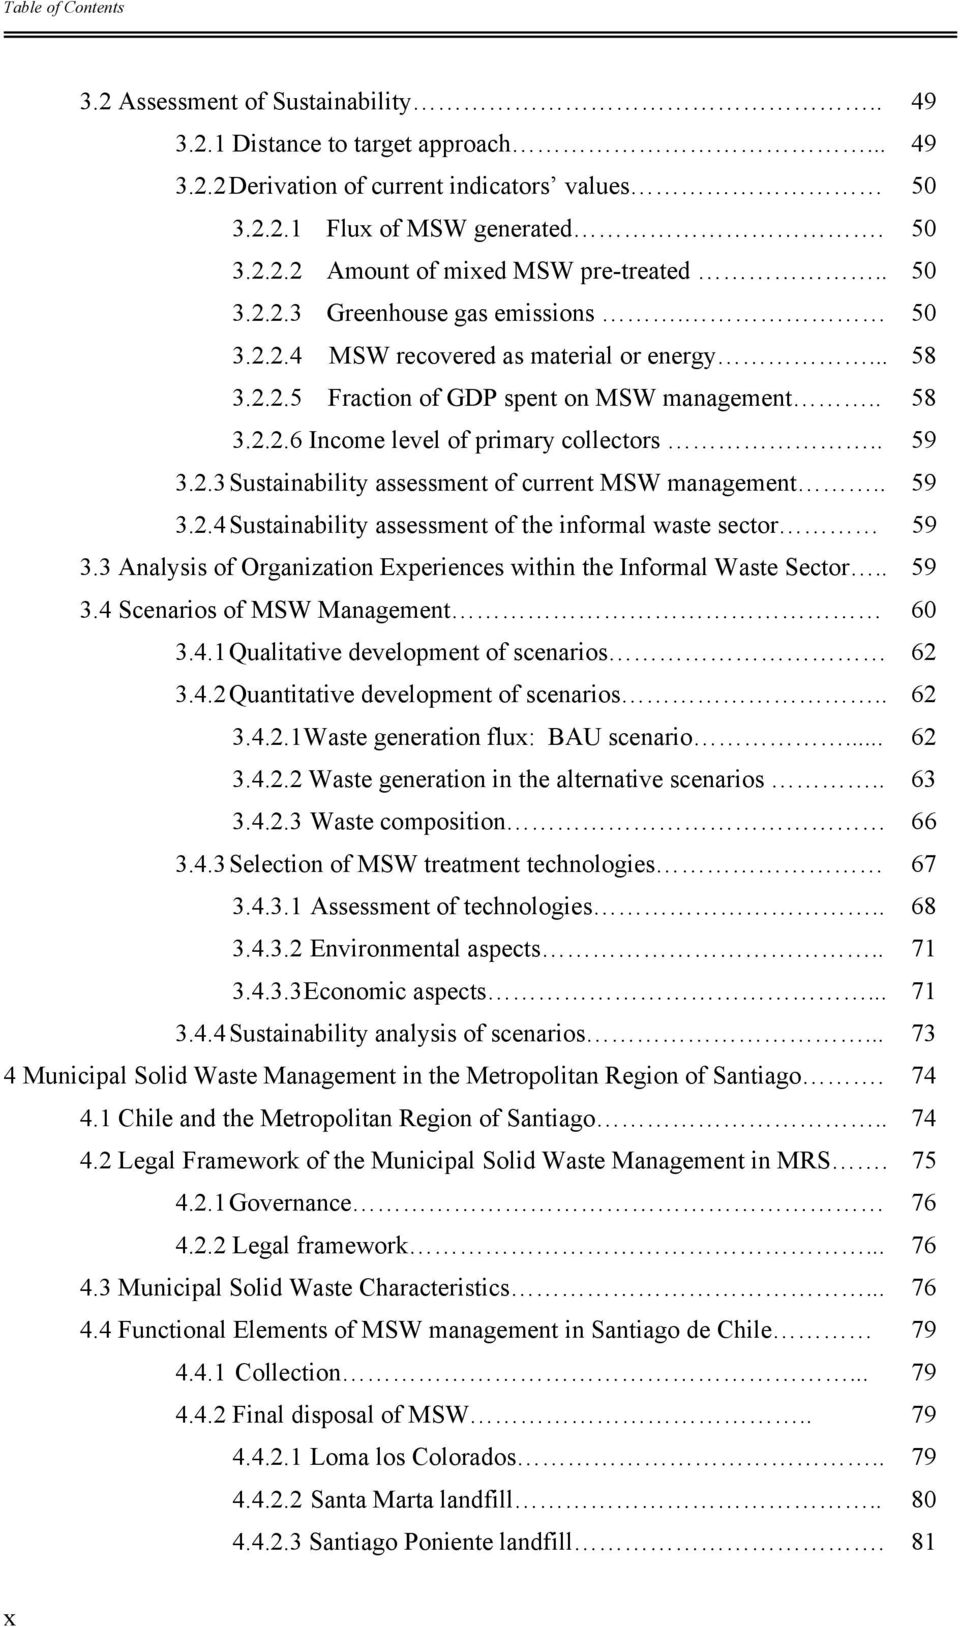 . 59 3.2.4 Sustainability assessment of the informal waste sector 59 3.3 Analysis of Organization Experiences within the Informal Waste Sector.. 59 3.4 Scenarios of MSW Management 60 3.4.1 Qualitative development of scenarios 62 3.